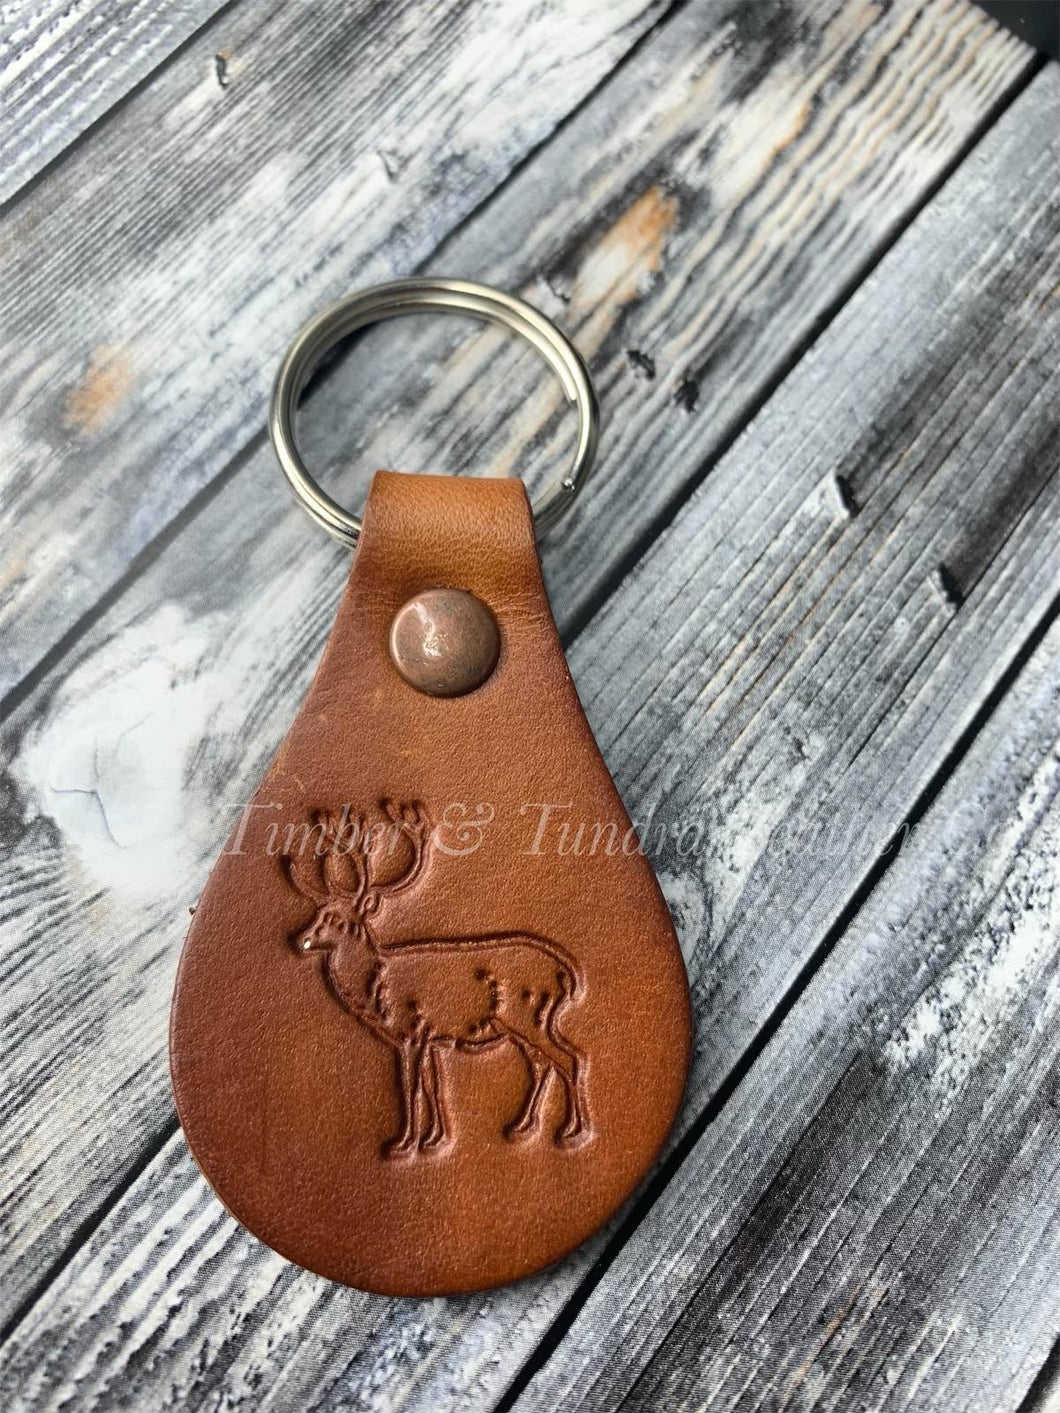 Rare and Vintage Design Caribou Keychain